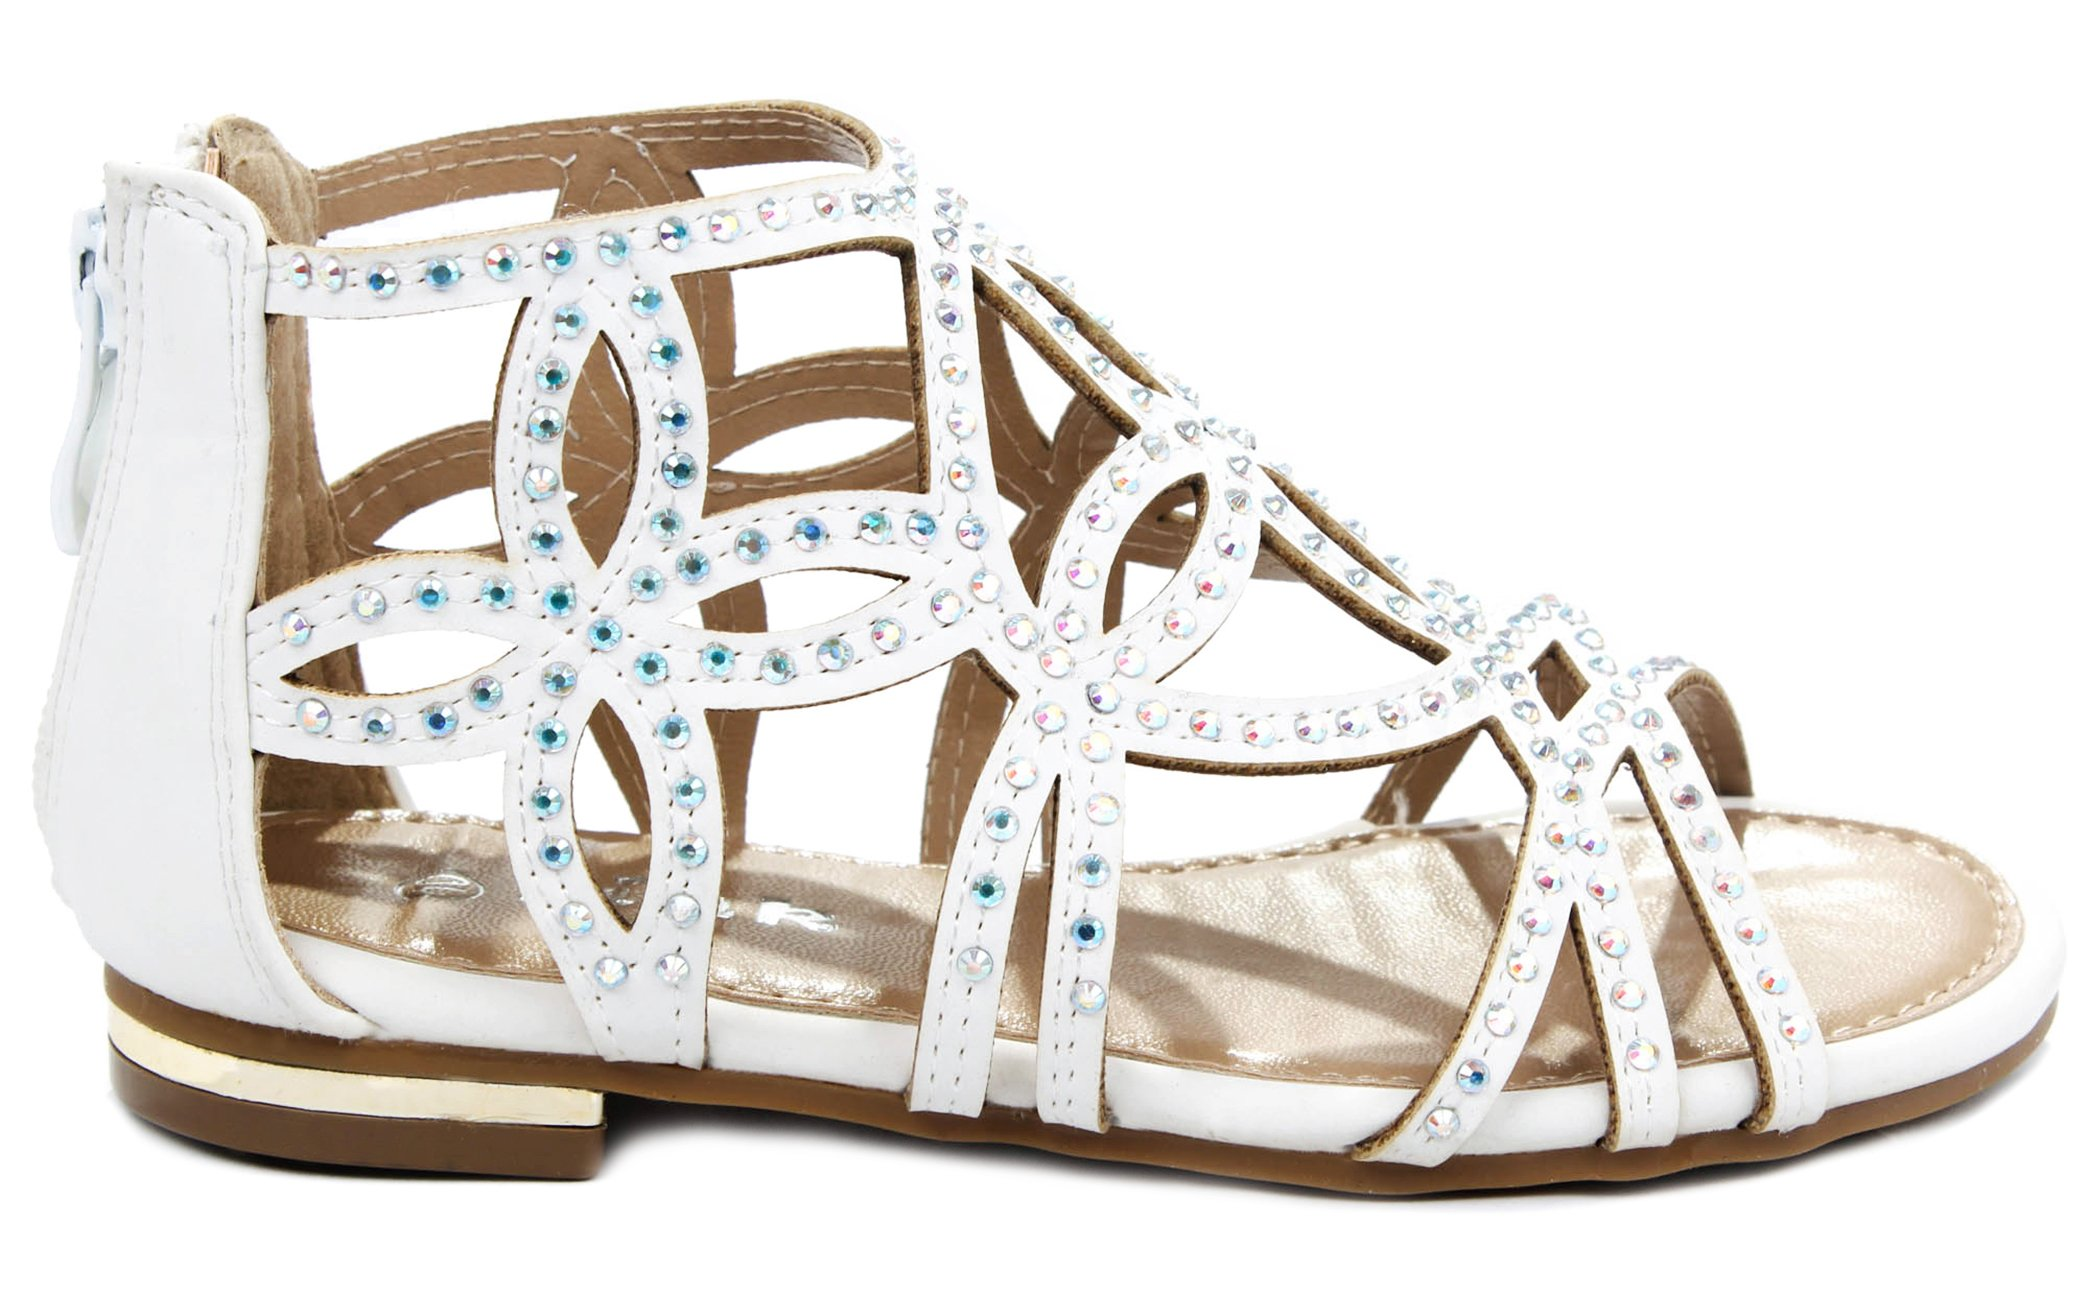 Forever Tory-63K Girls Rhinestone Glittering Cut Out Strap Gladiator Flat Dress Sandal,White Nub_T-63K,1